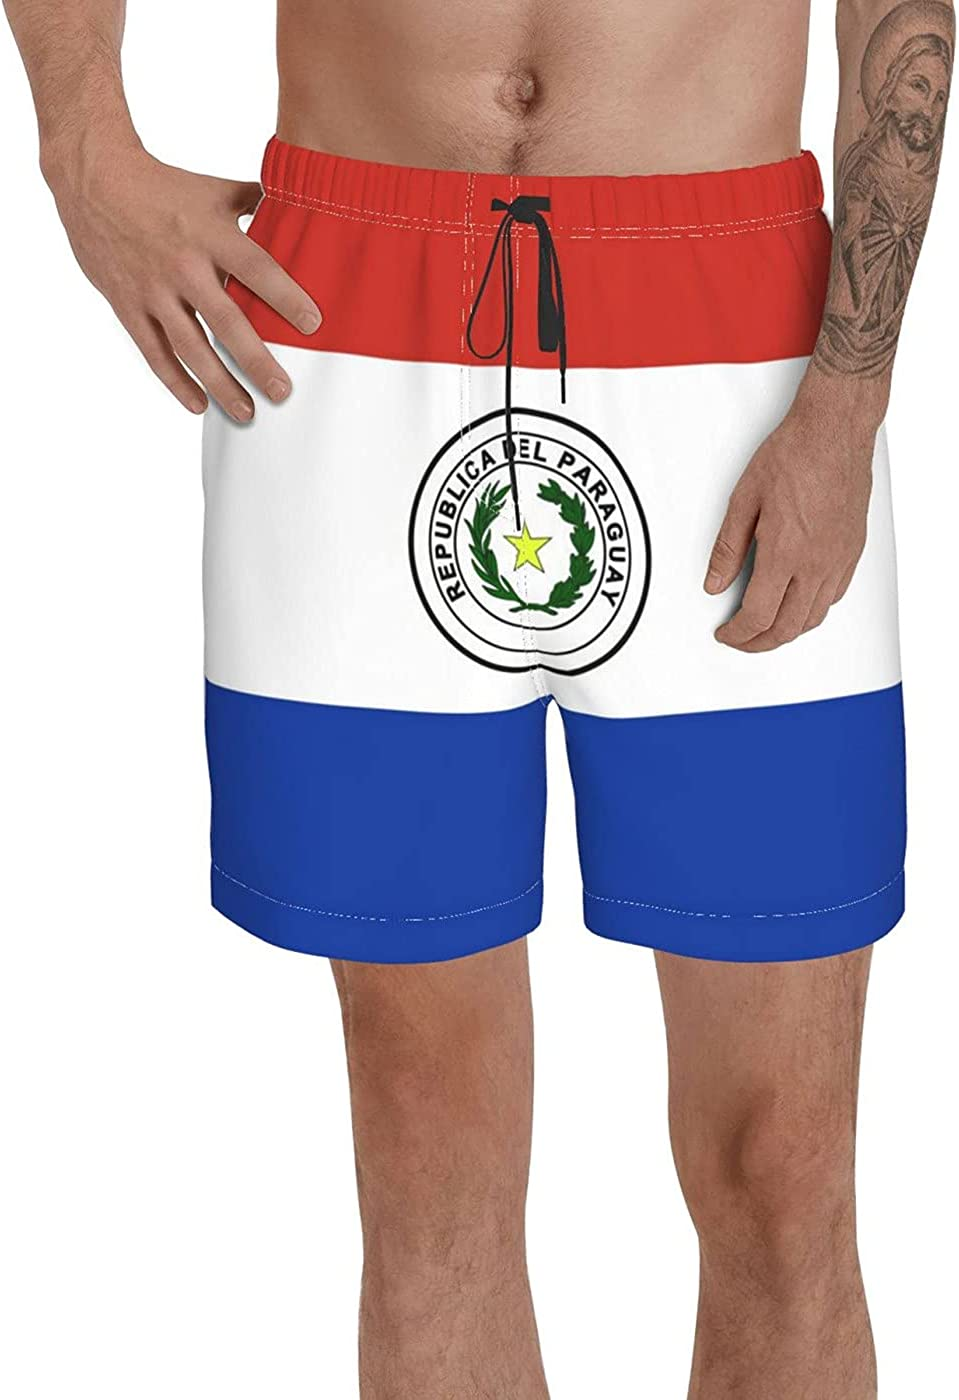 Count Paraguay Flag Men's 3D Printed Funny Summer Quick Dry Swim Short Board Shorts with